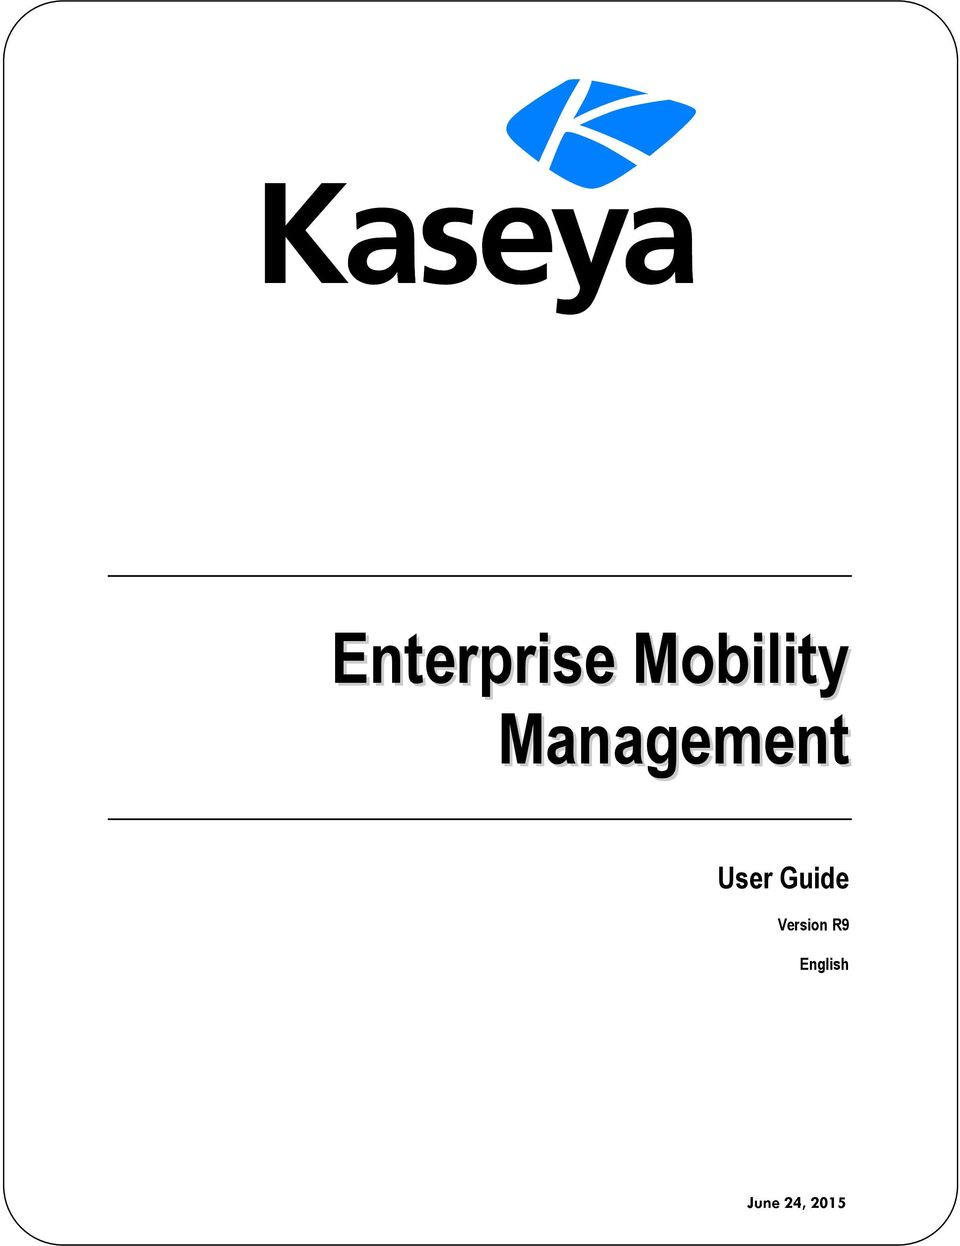 Management User